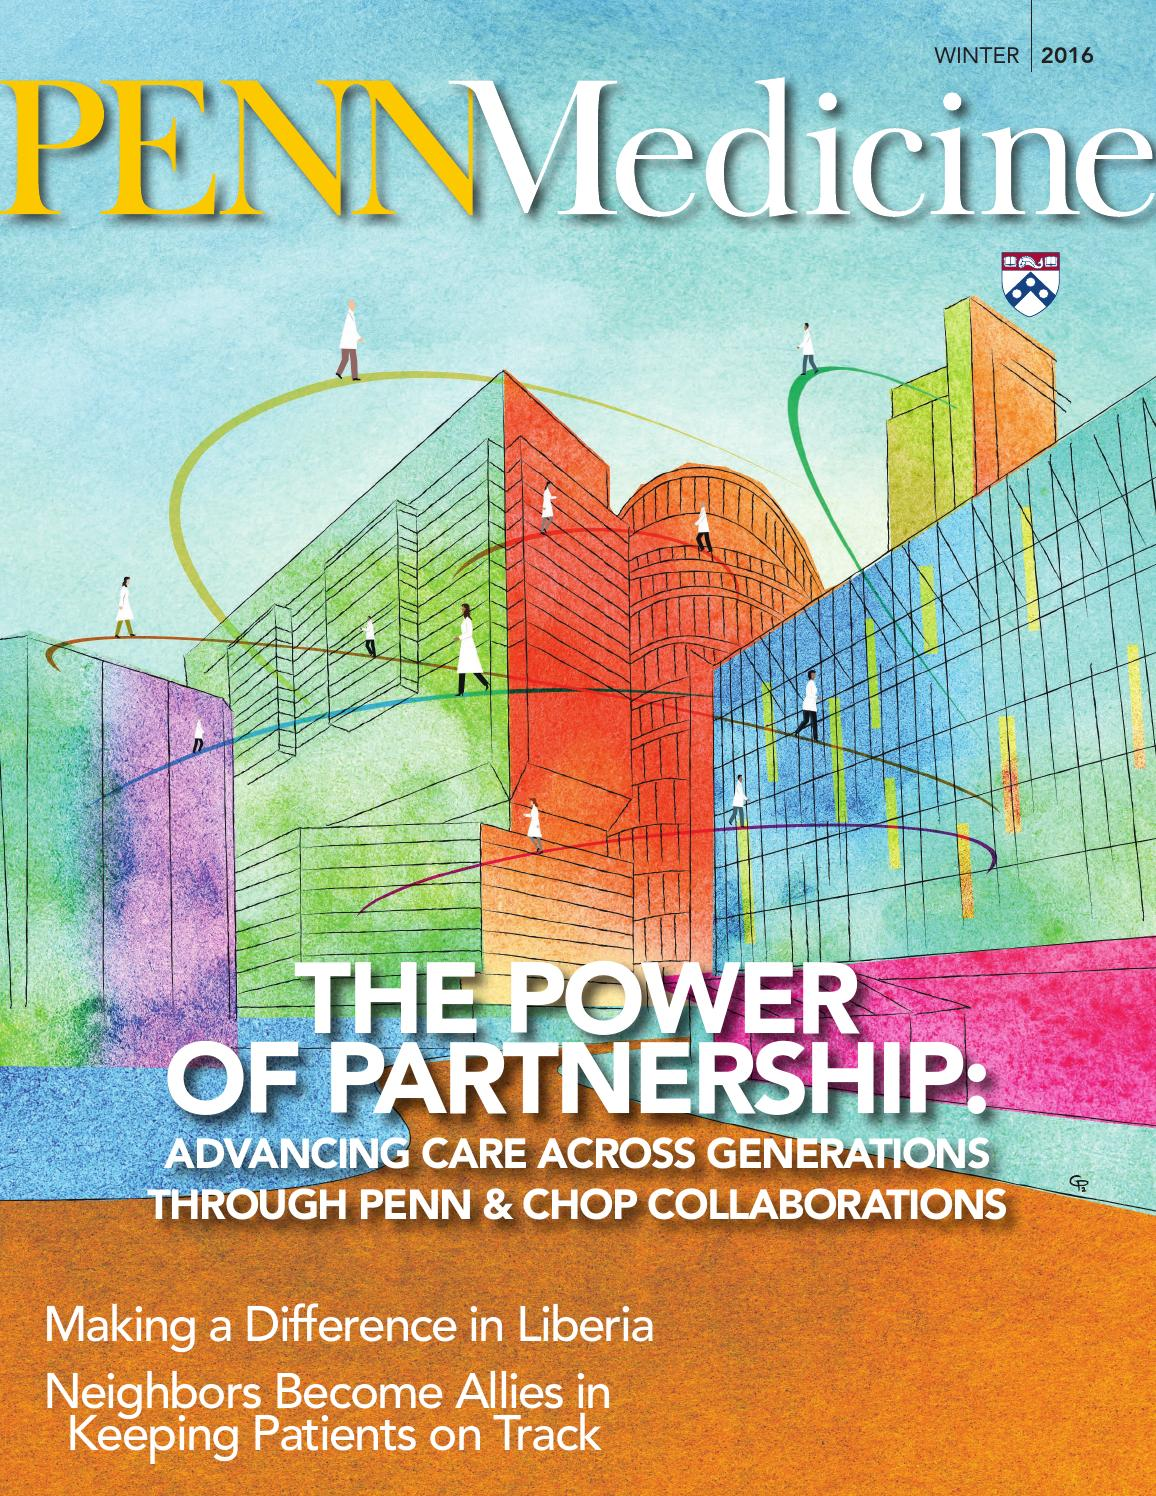 PENN Medicine Magazine | Winter 2016 by Penn Medicine - issuu